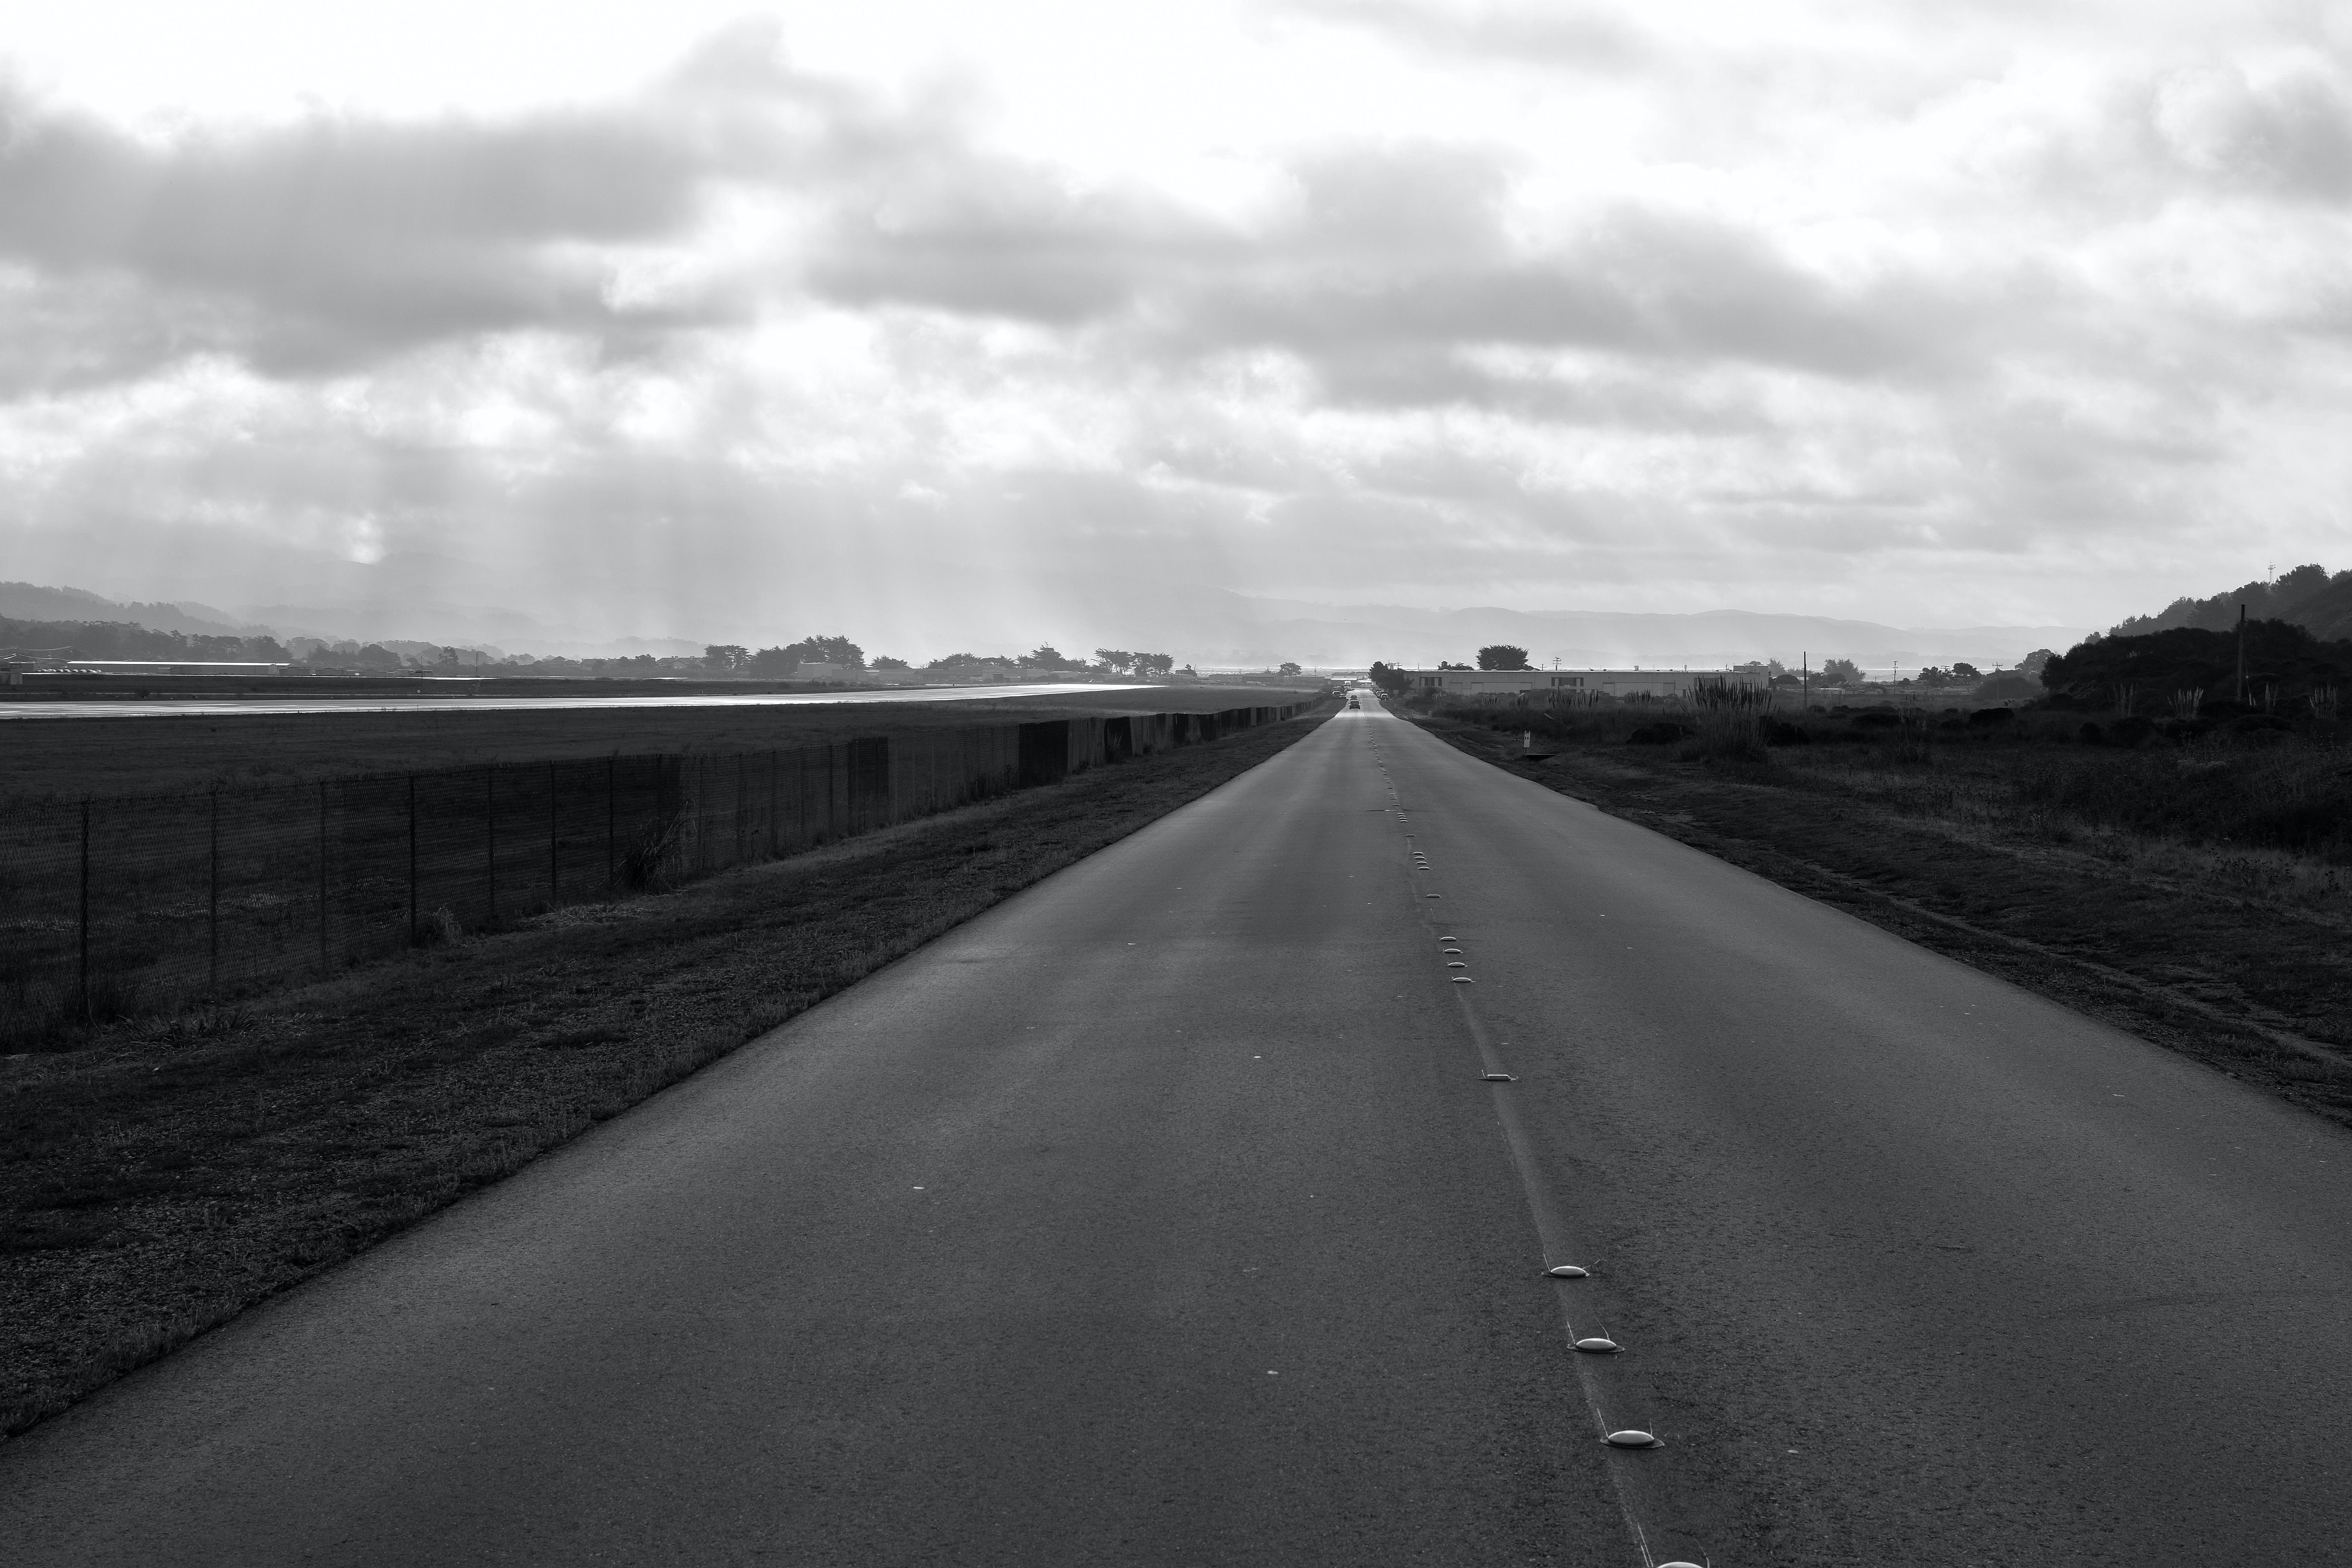 Grayscale Gray Concrete Road at Daytime